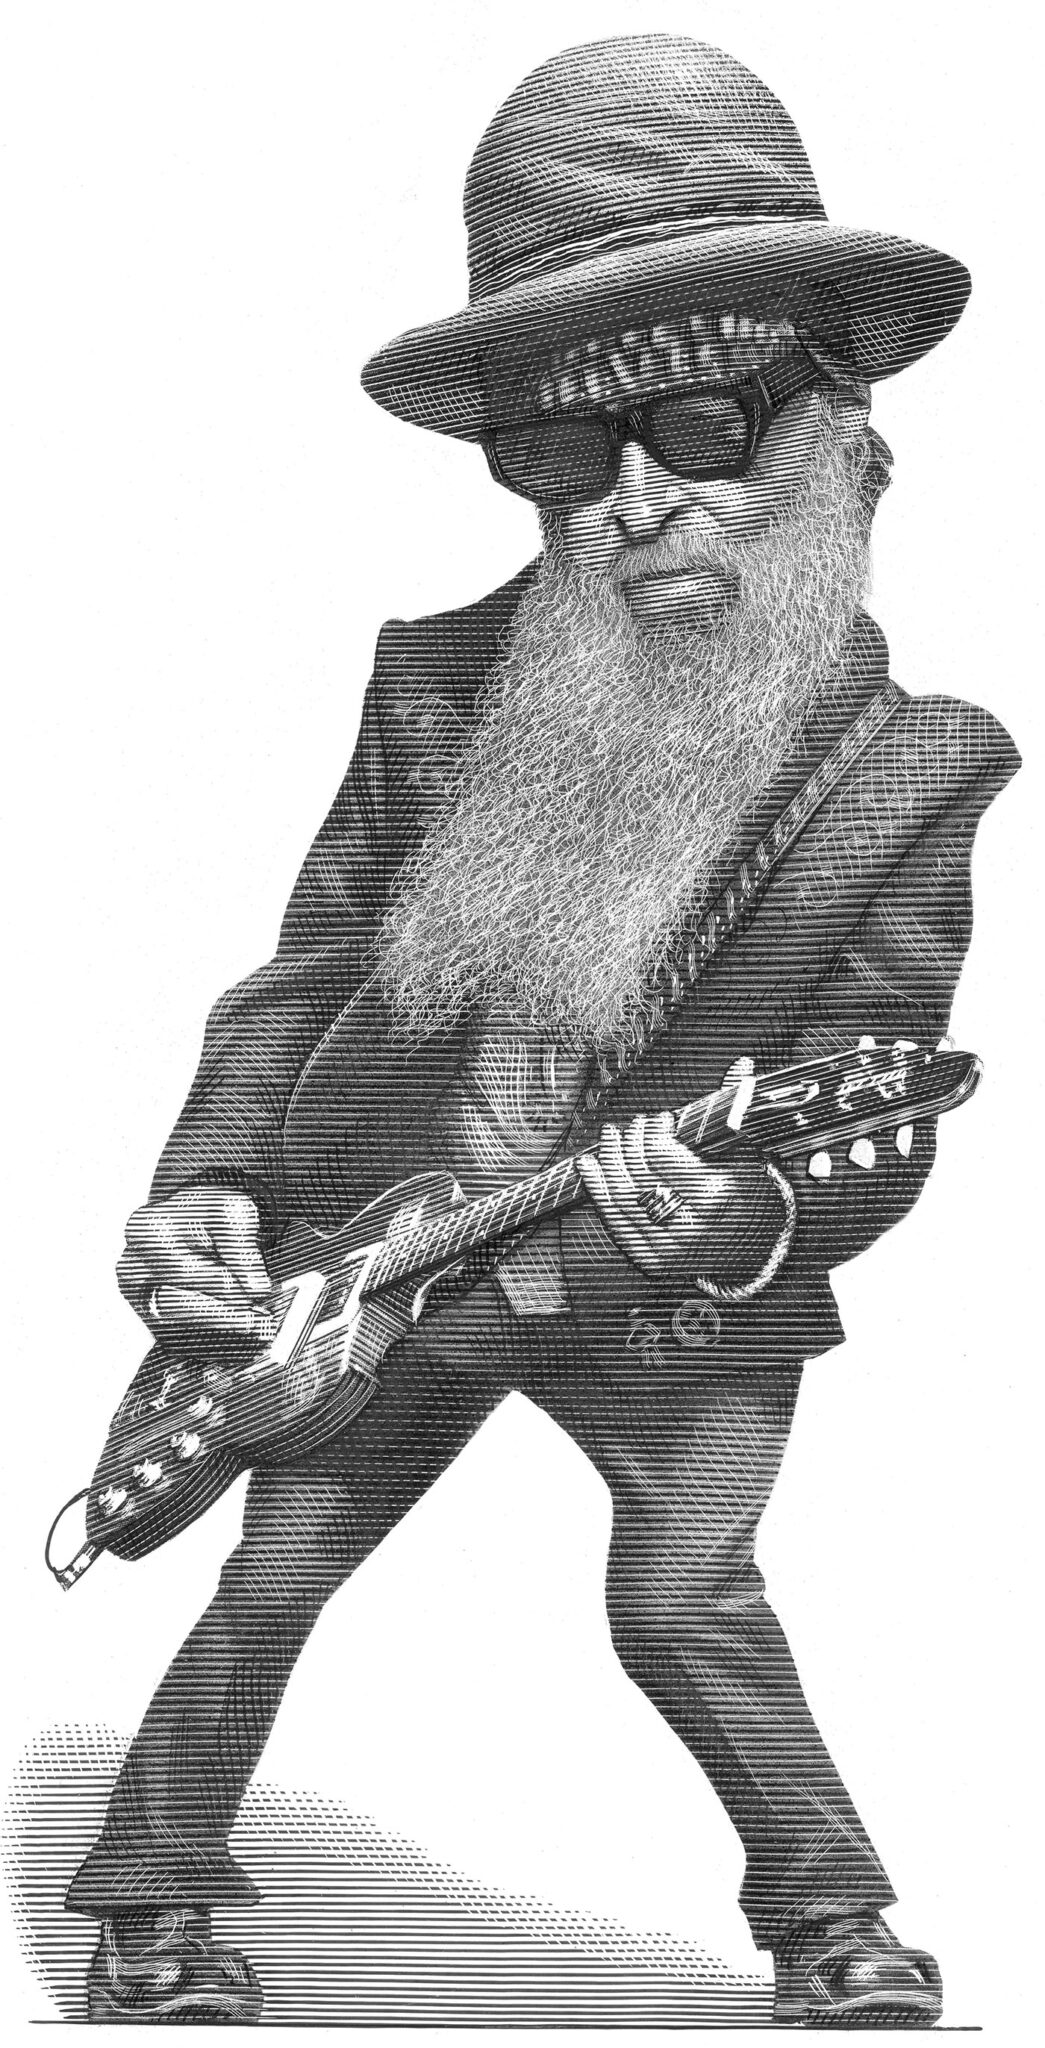 Richard Solomon - Mark-Summers-633-Billy-Gibbons-finish-001